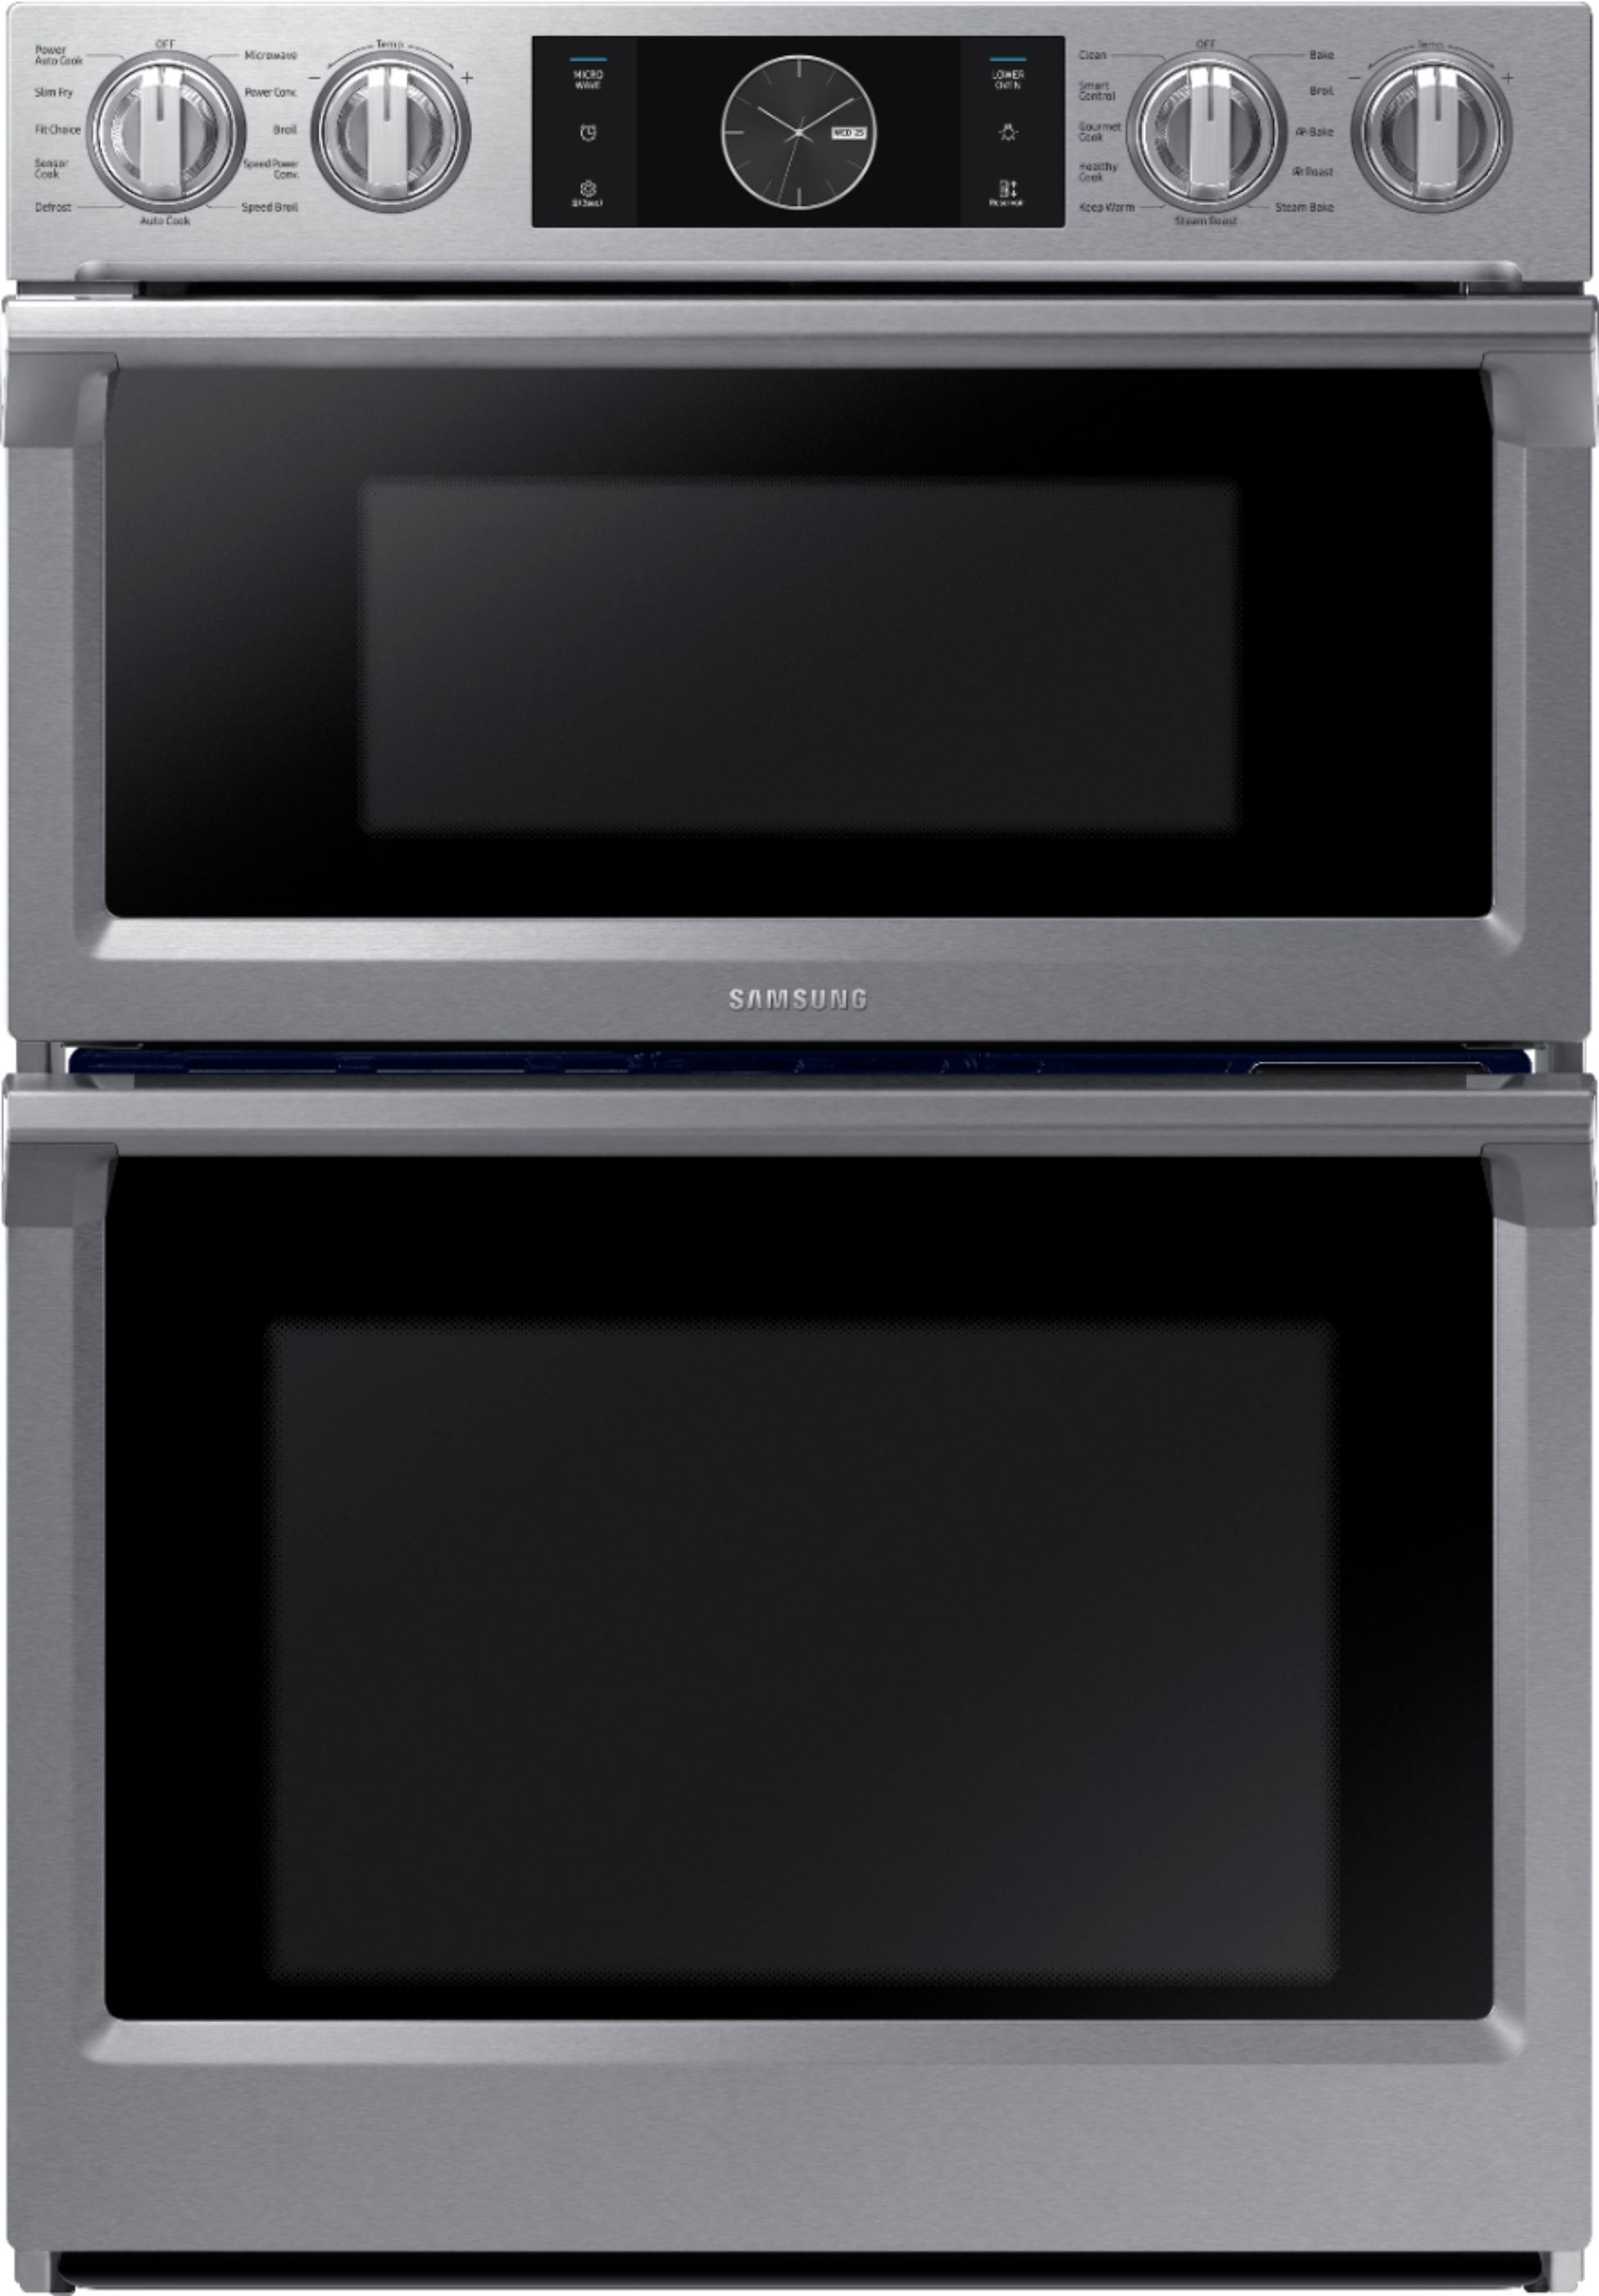 samsung 30 microwave combination wall oven with flex duo steam cook and wifi stainless steel